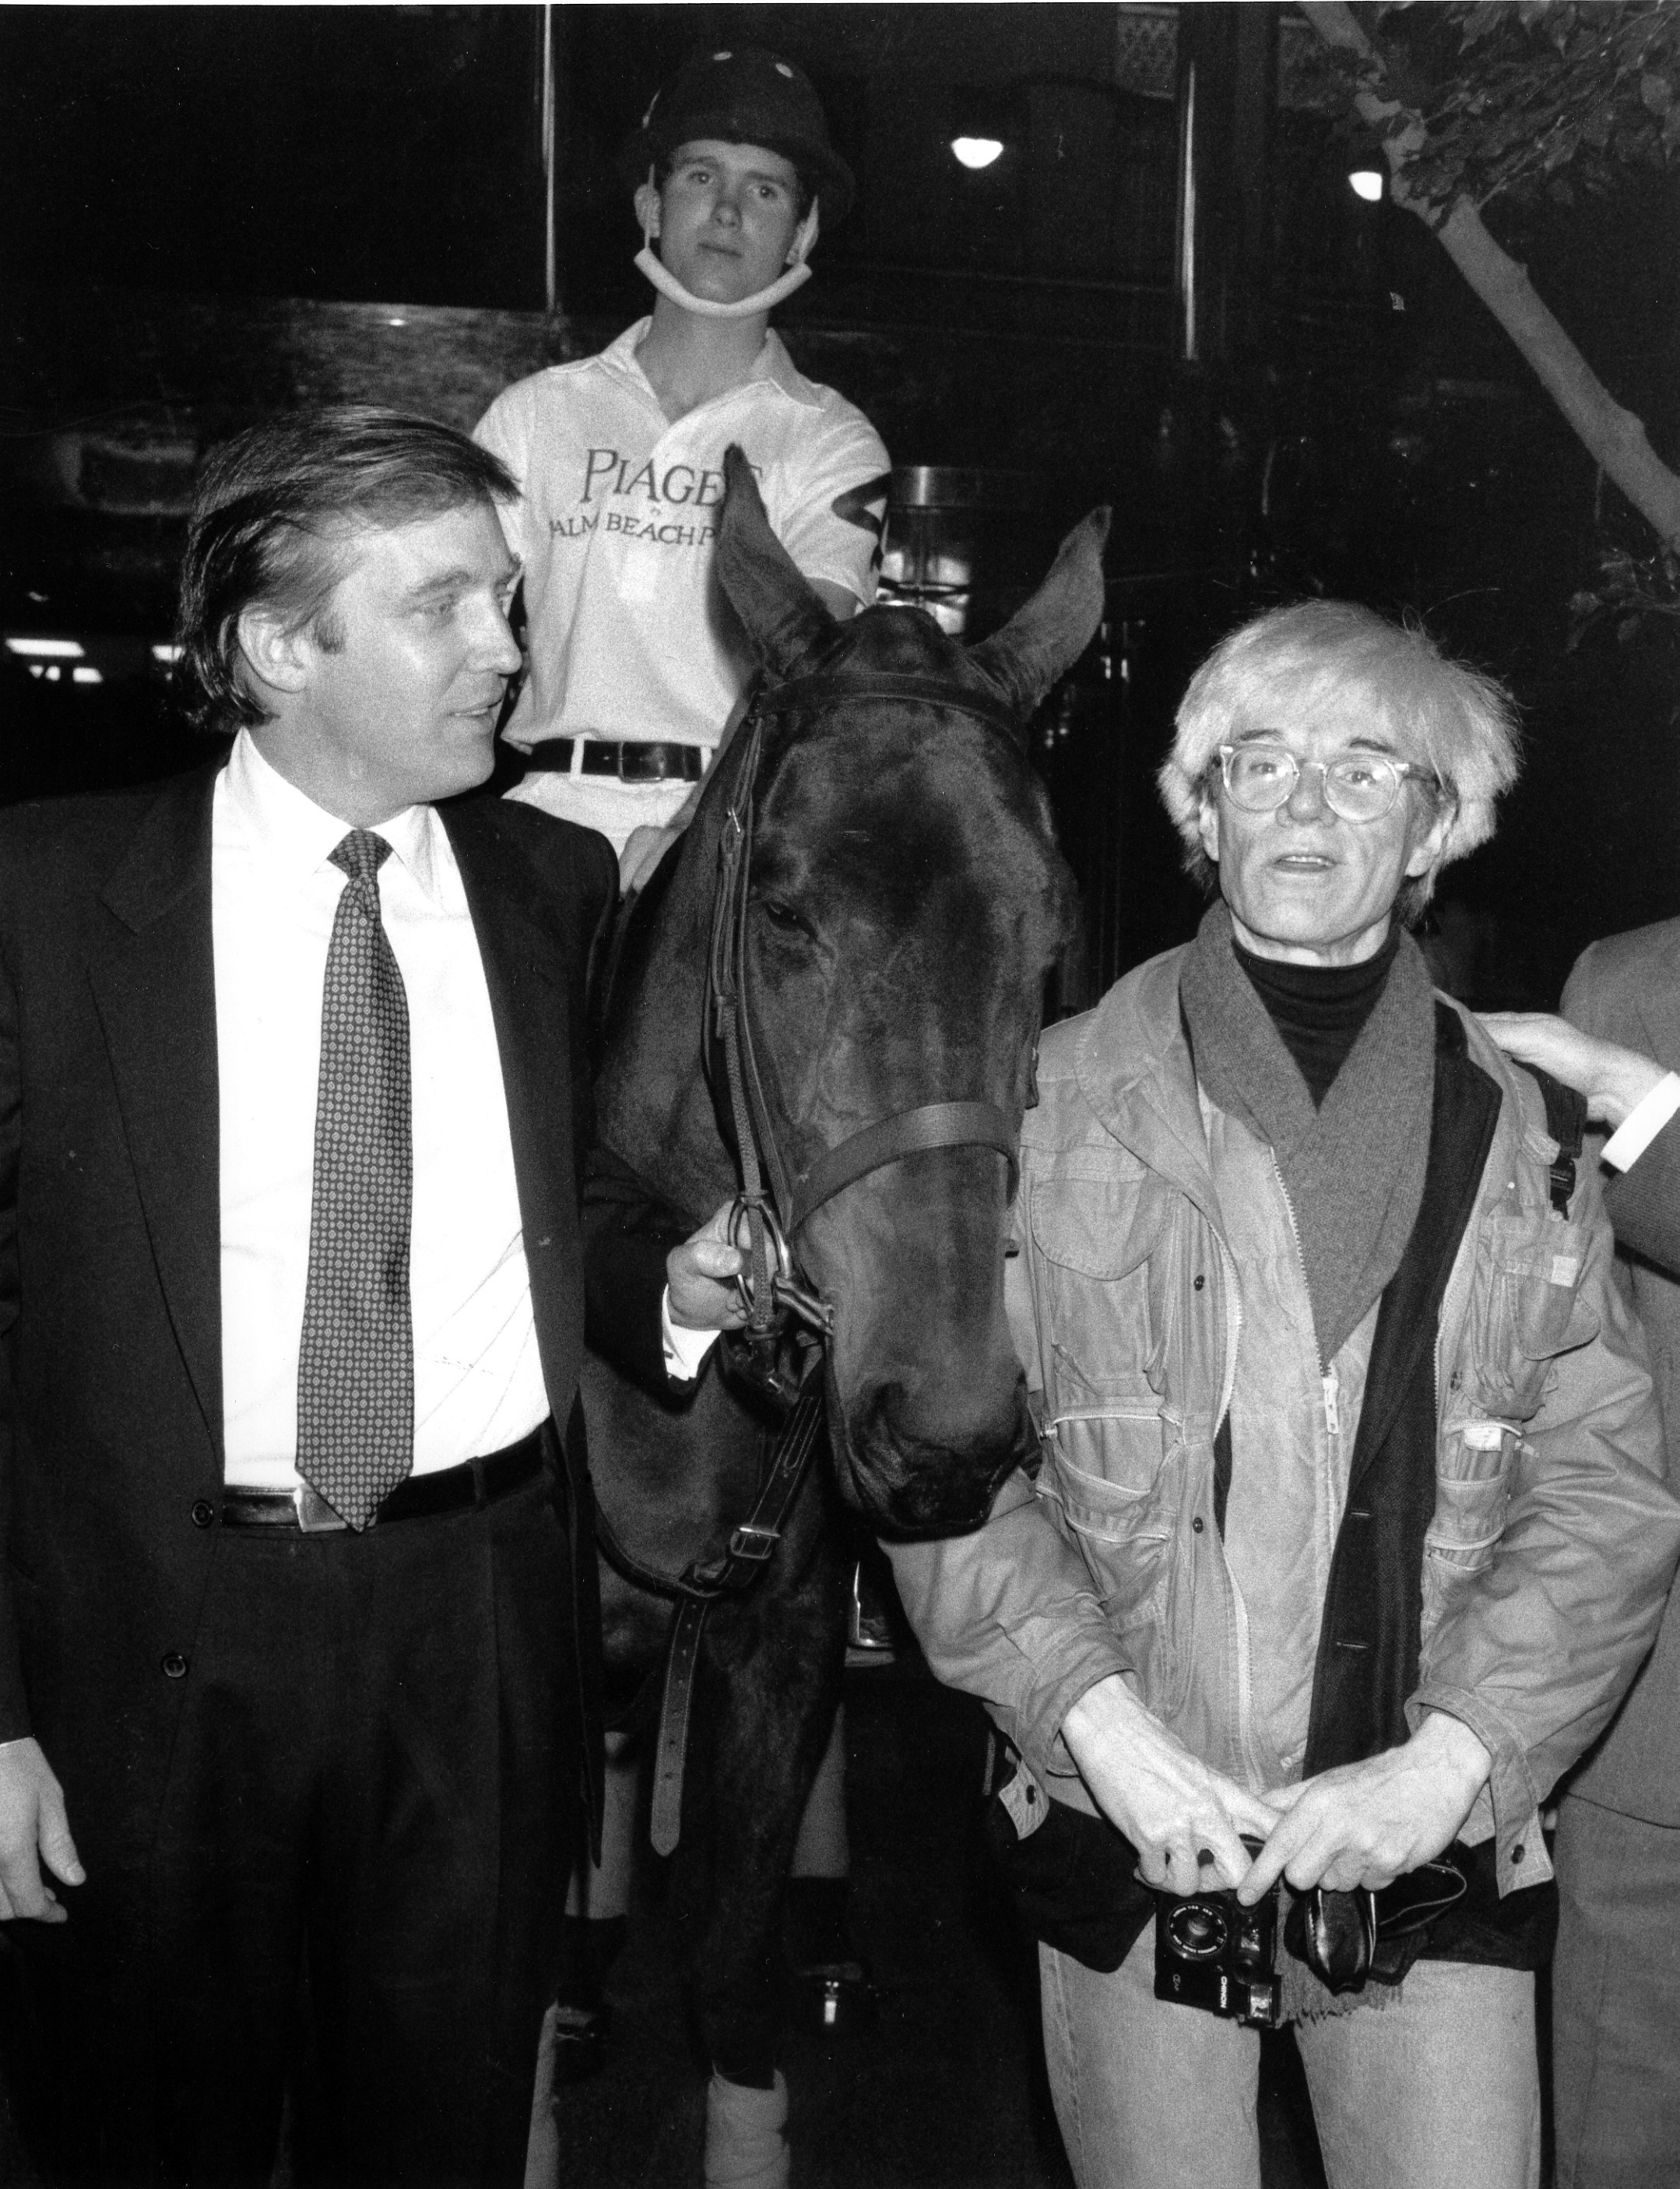 Donald Trump, owner of New York's Trump Tower, holds the bridle of a polo pony while talking to Andy Warhol on Nov. 4, 1983.